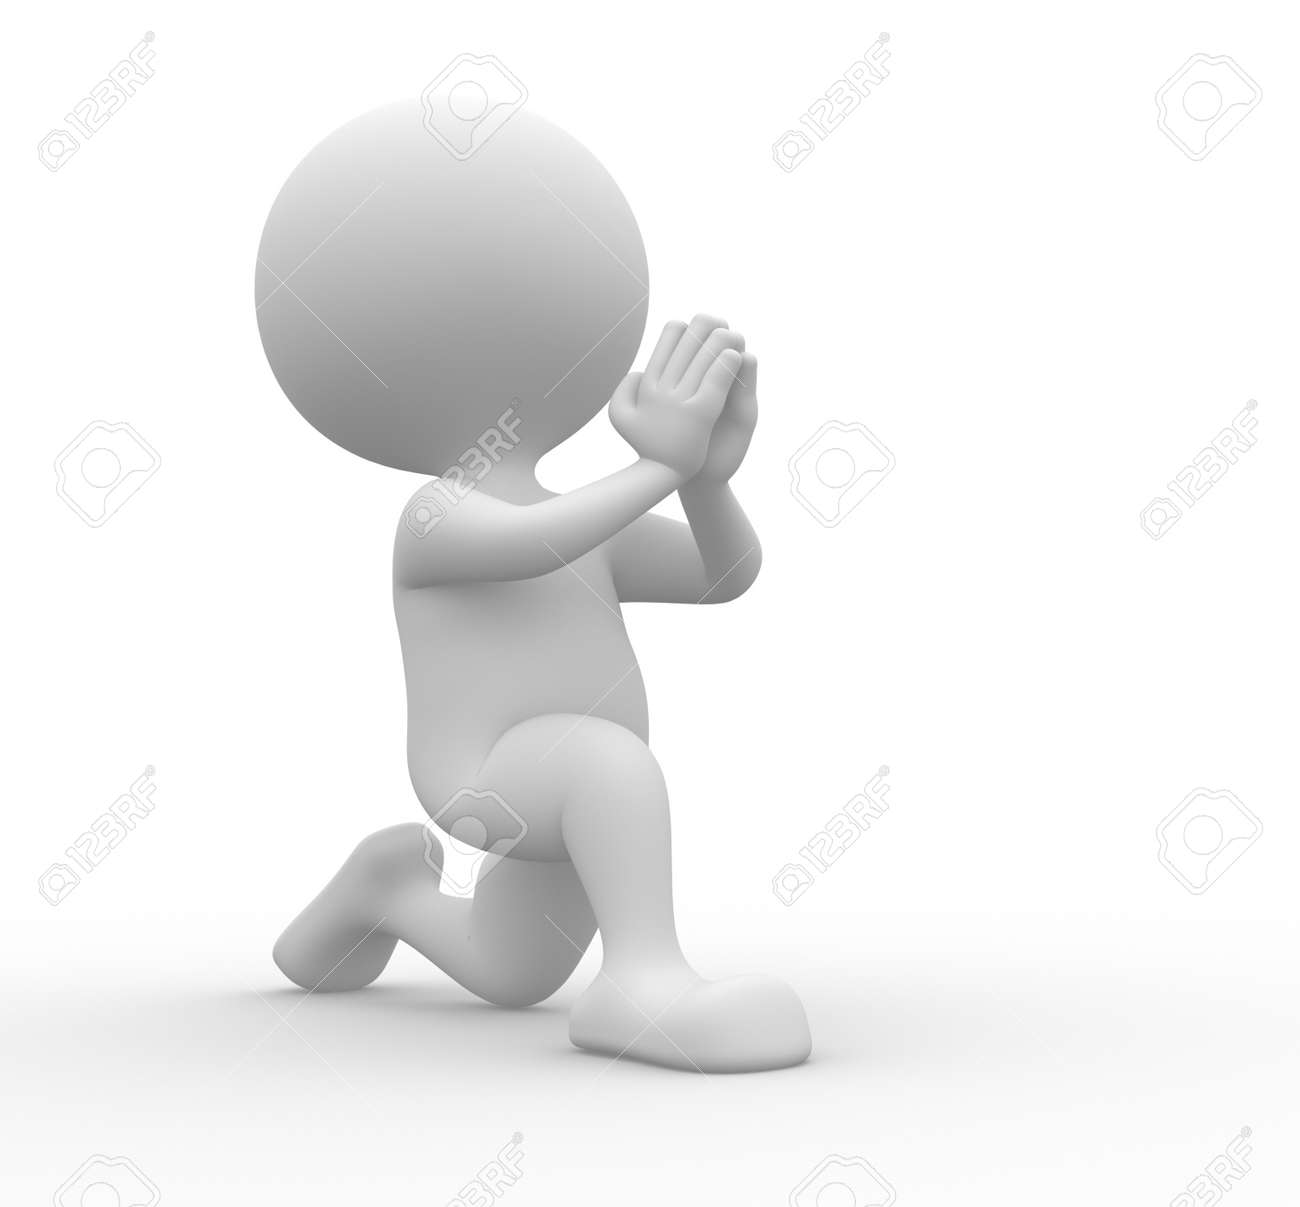 3d people - man, person on his knees asking for forgiveness Stock Photo - 21358975